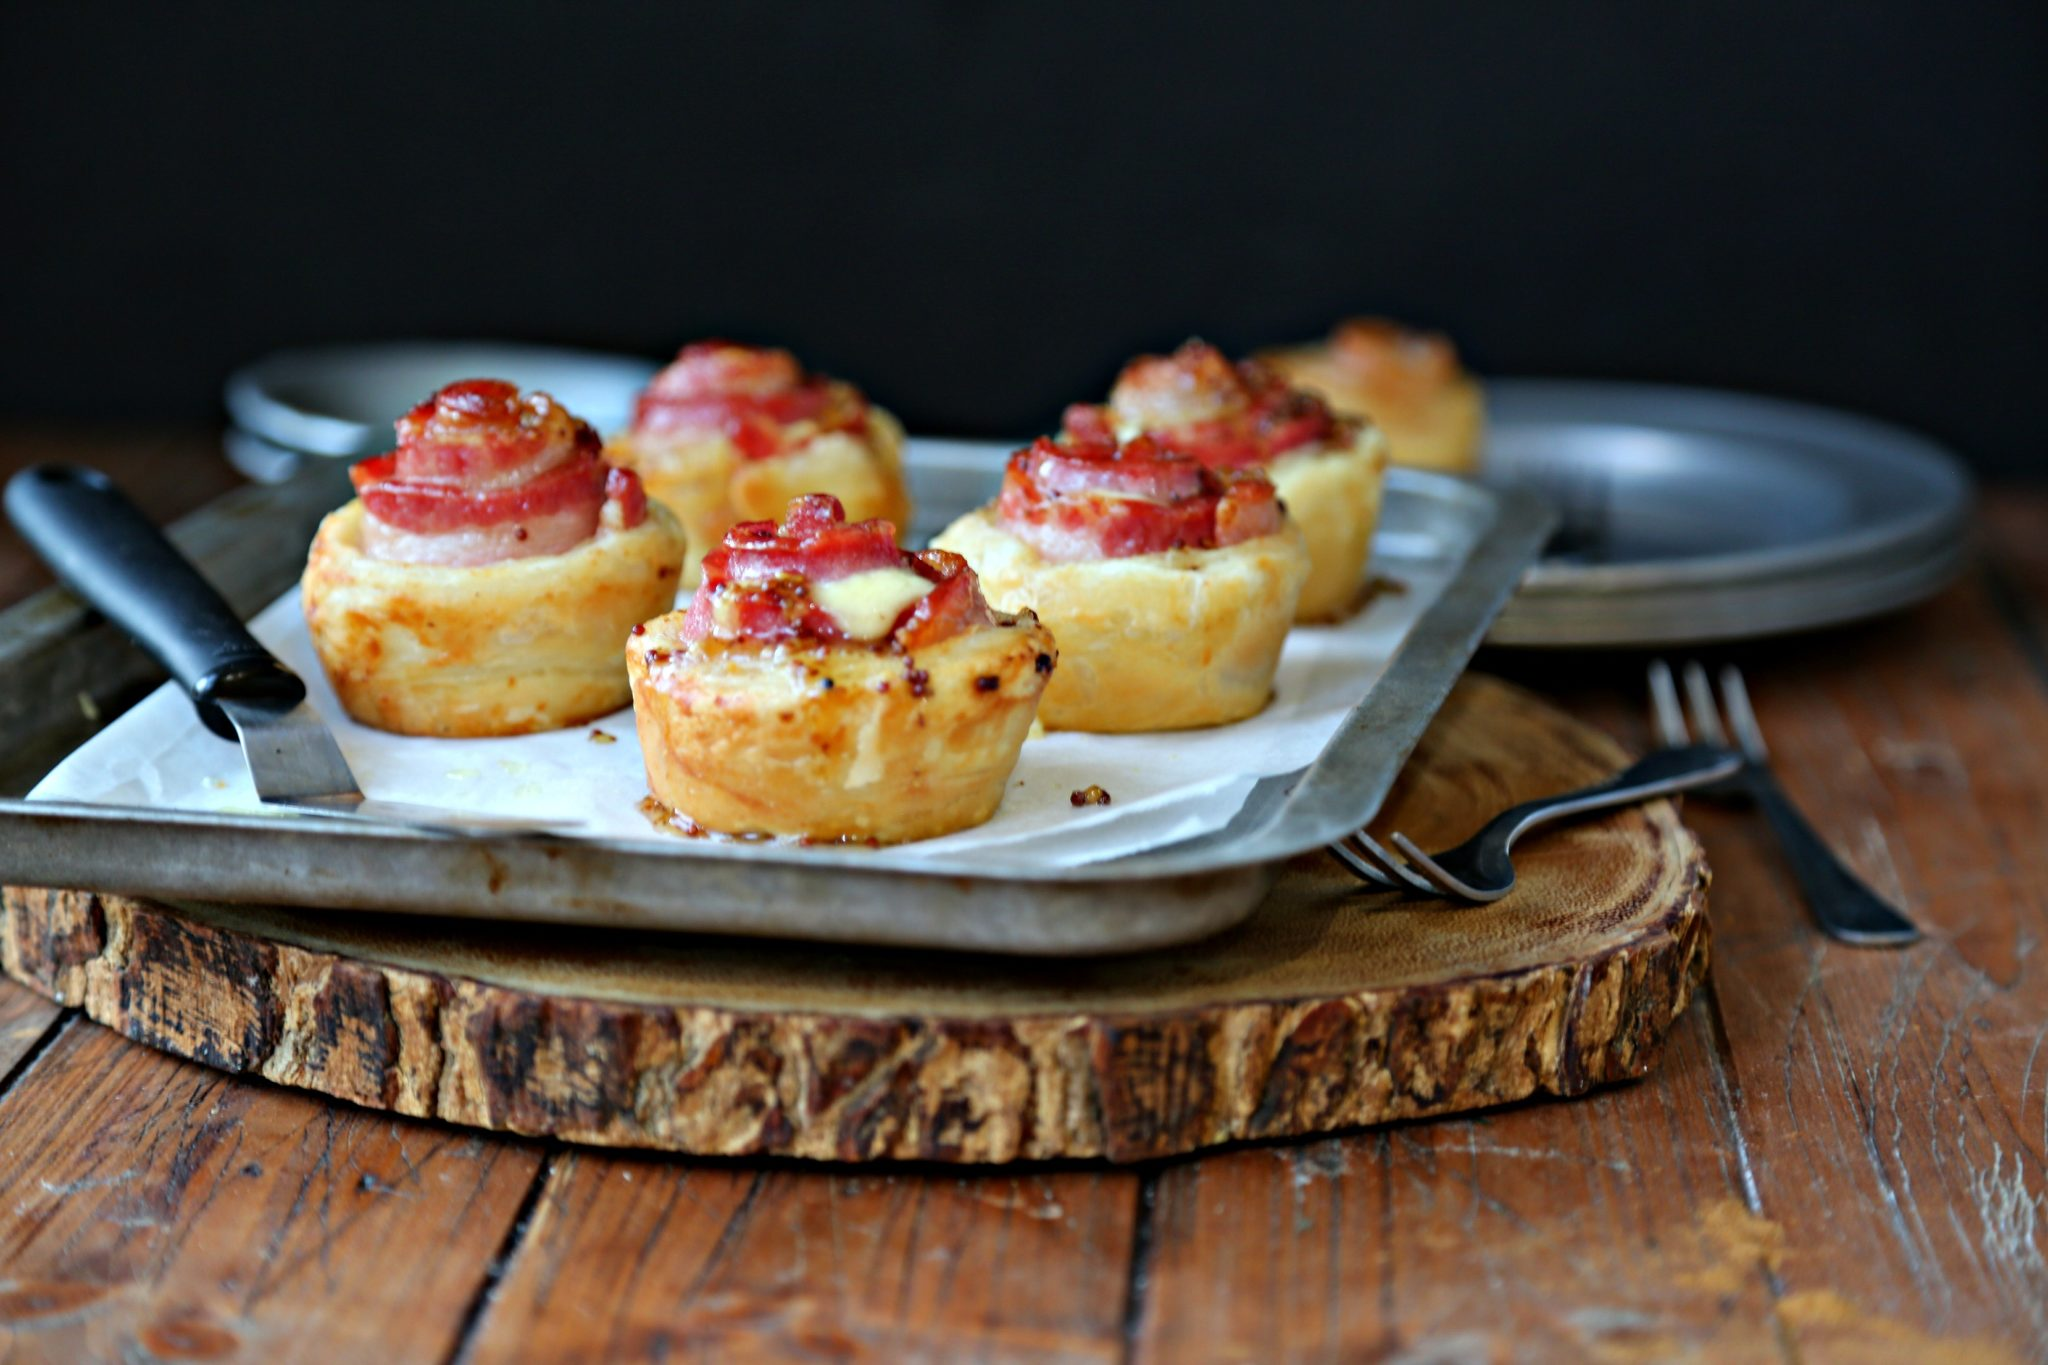 Up your appetizer game with these easy and delicious glazed Bacon & Havarti Puff Pastry Bites #appetizer #puffpastry #bacon #easyappetizers #fingerfood